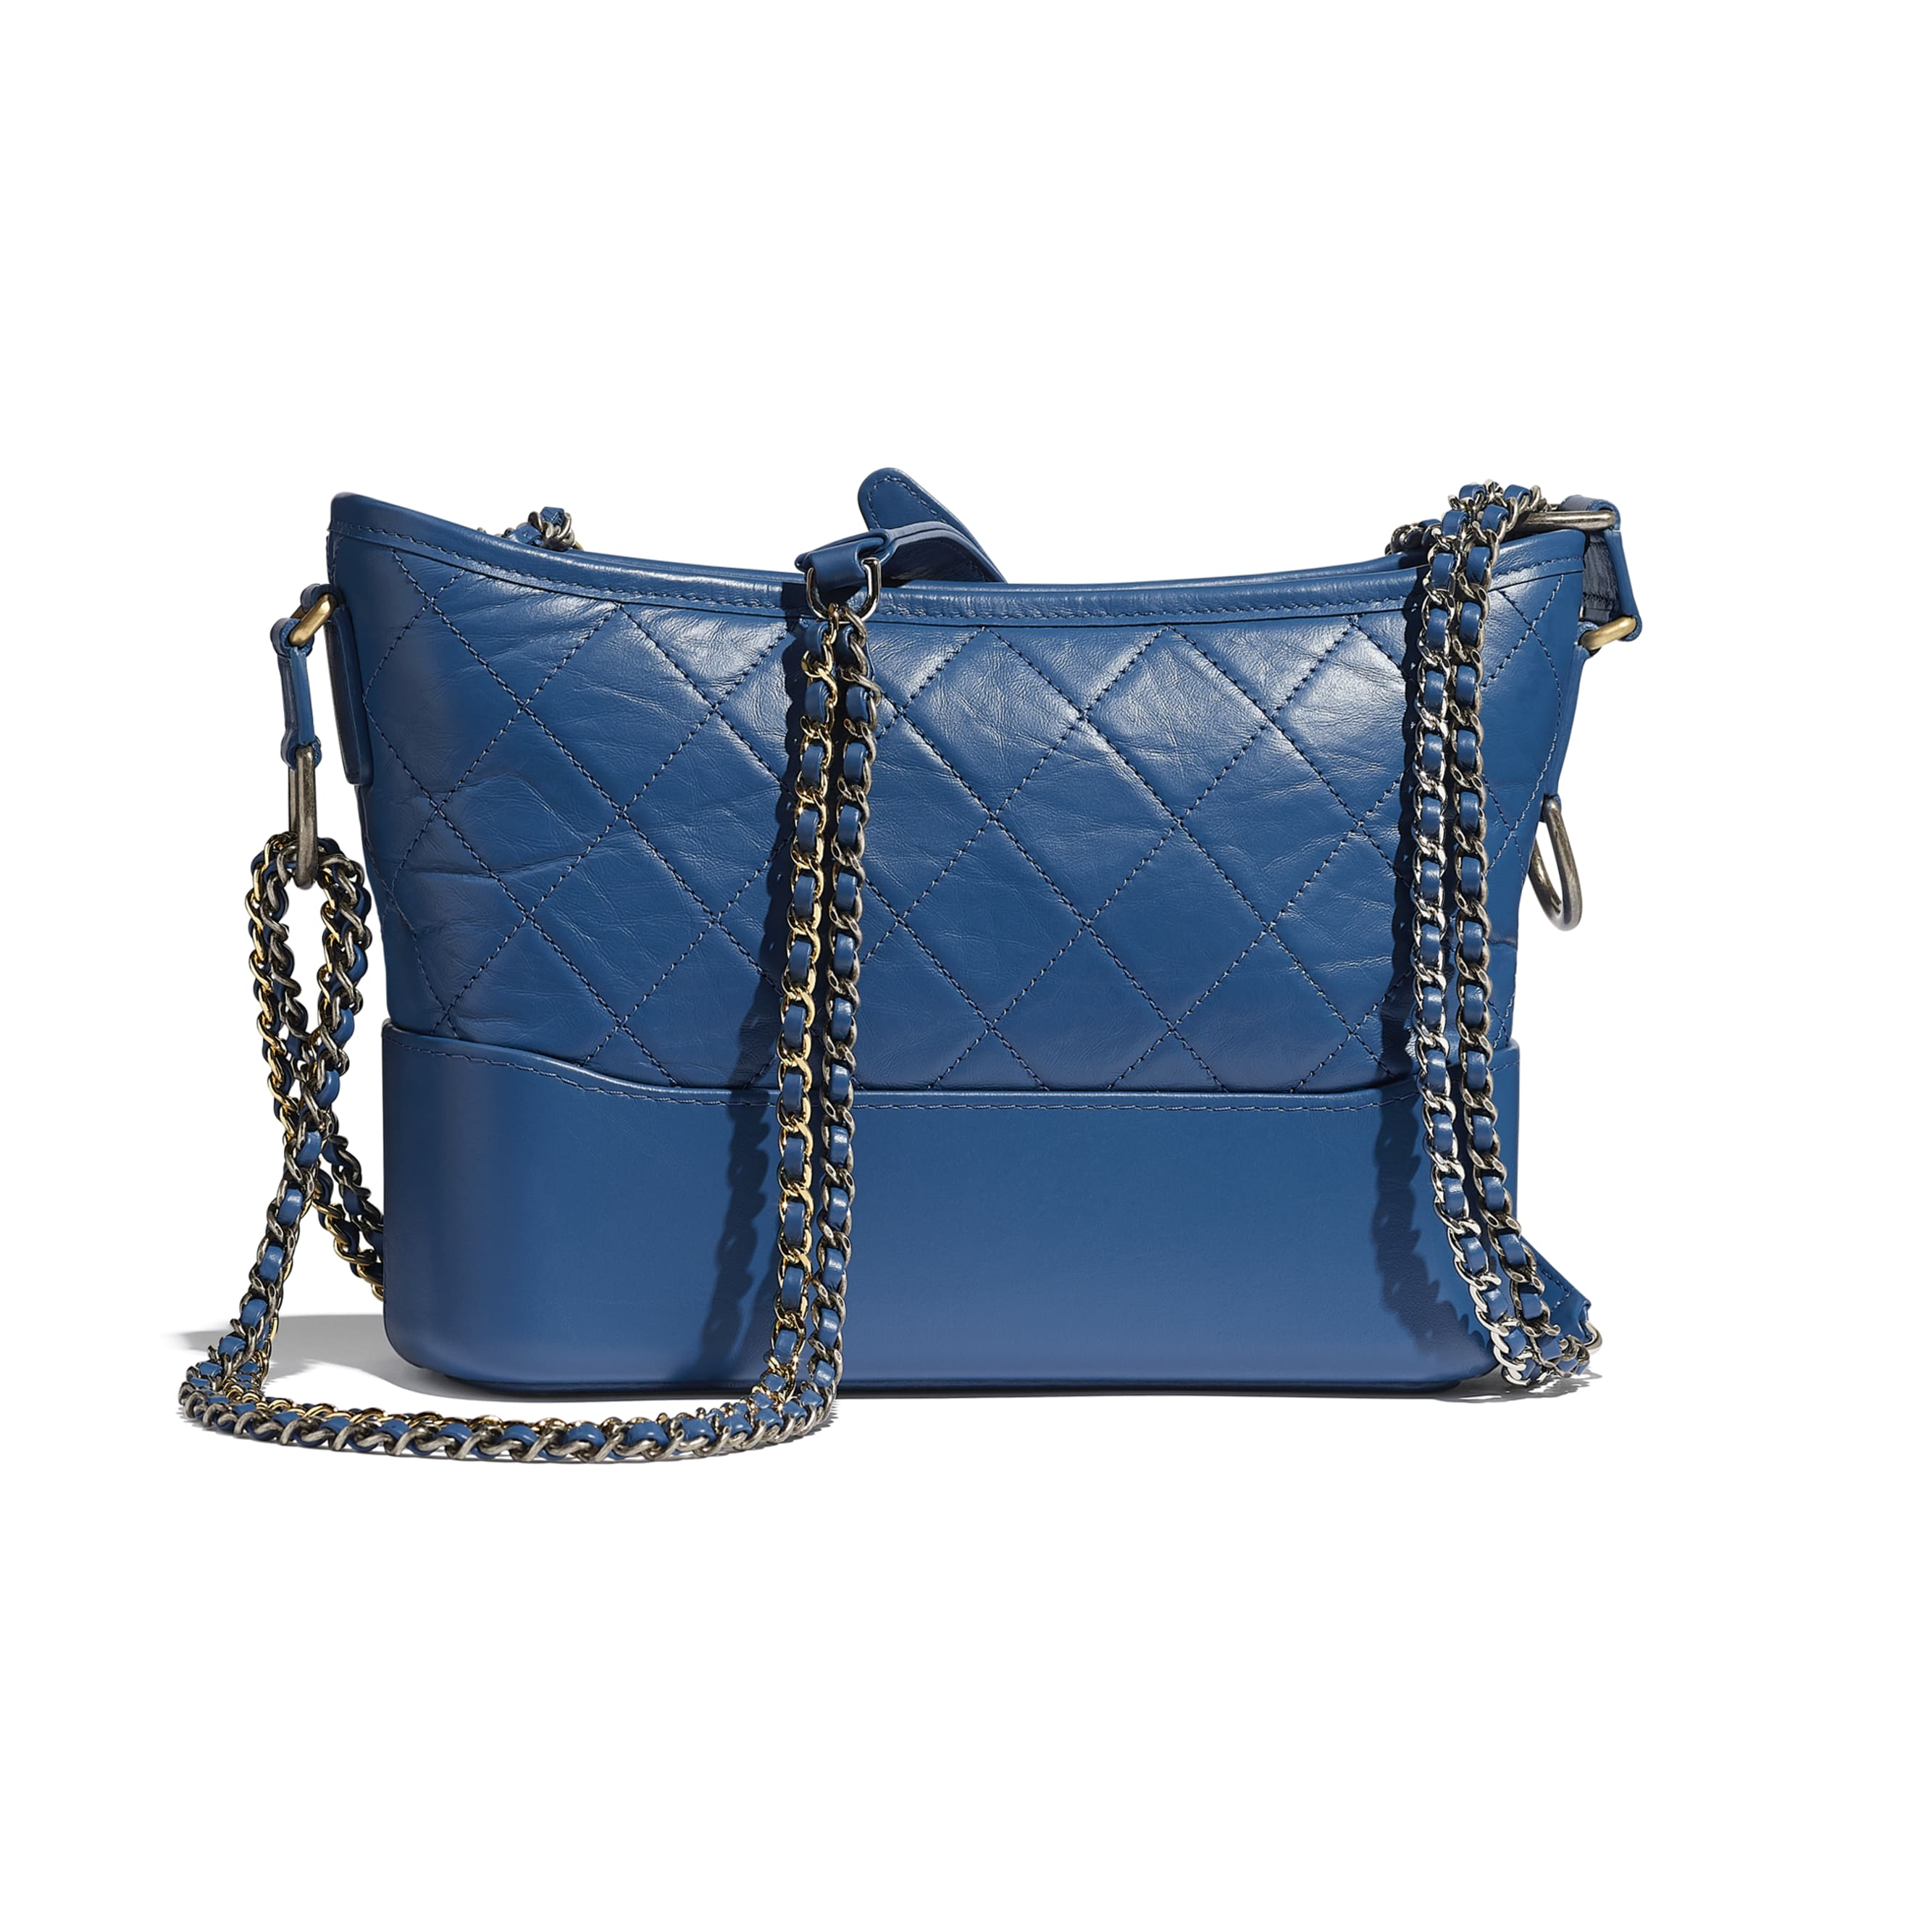 CHANEL'S GABRIELLE Hobo Handbag - Dark Blue - Aged Calfskin, Smooth Calfskin, Gold-Tone, Silver-Tone & Ruthenium-Finish Metal - CHANEL - Alternative view - see standard sized version